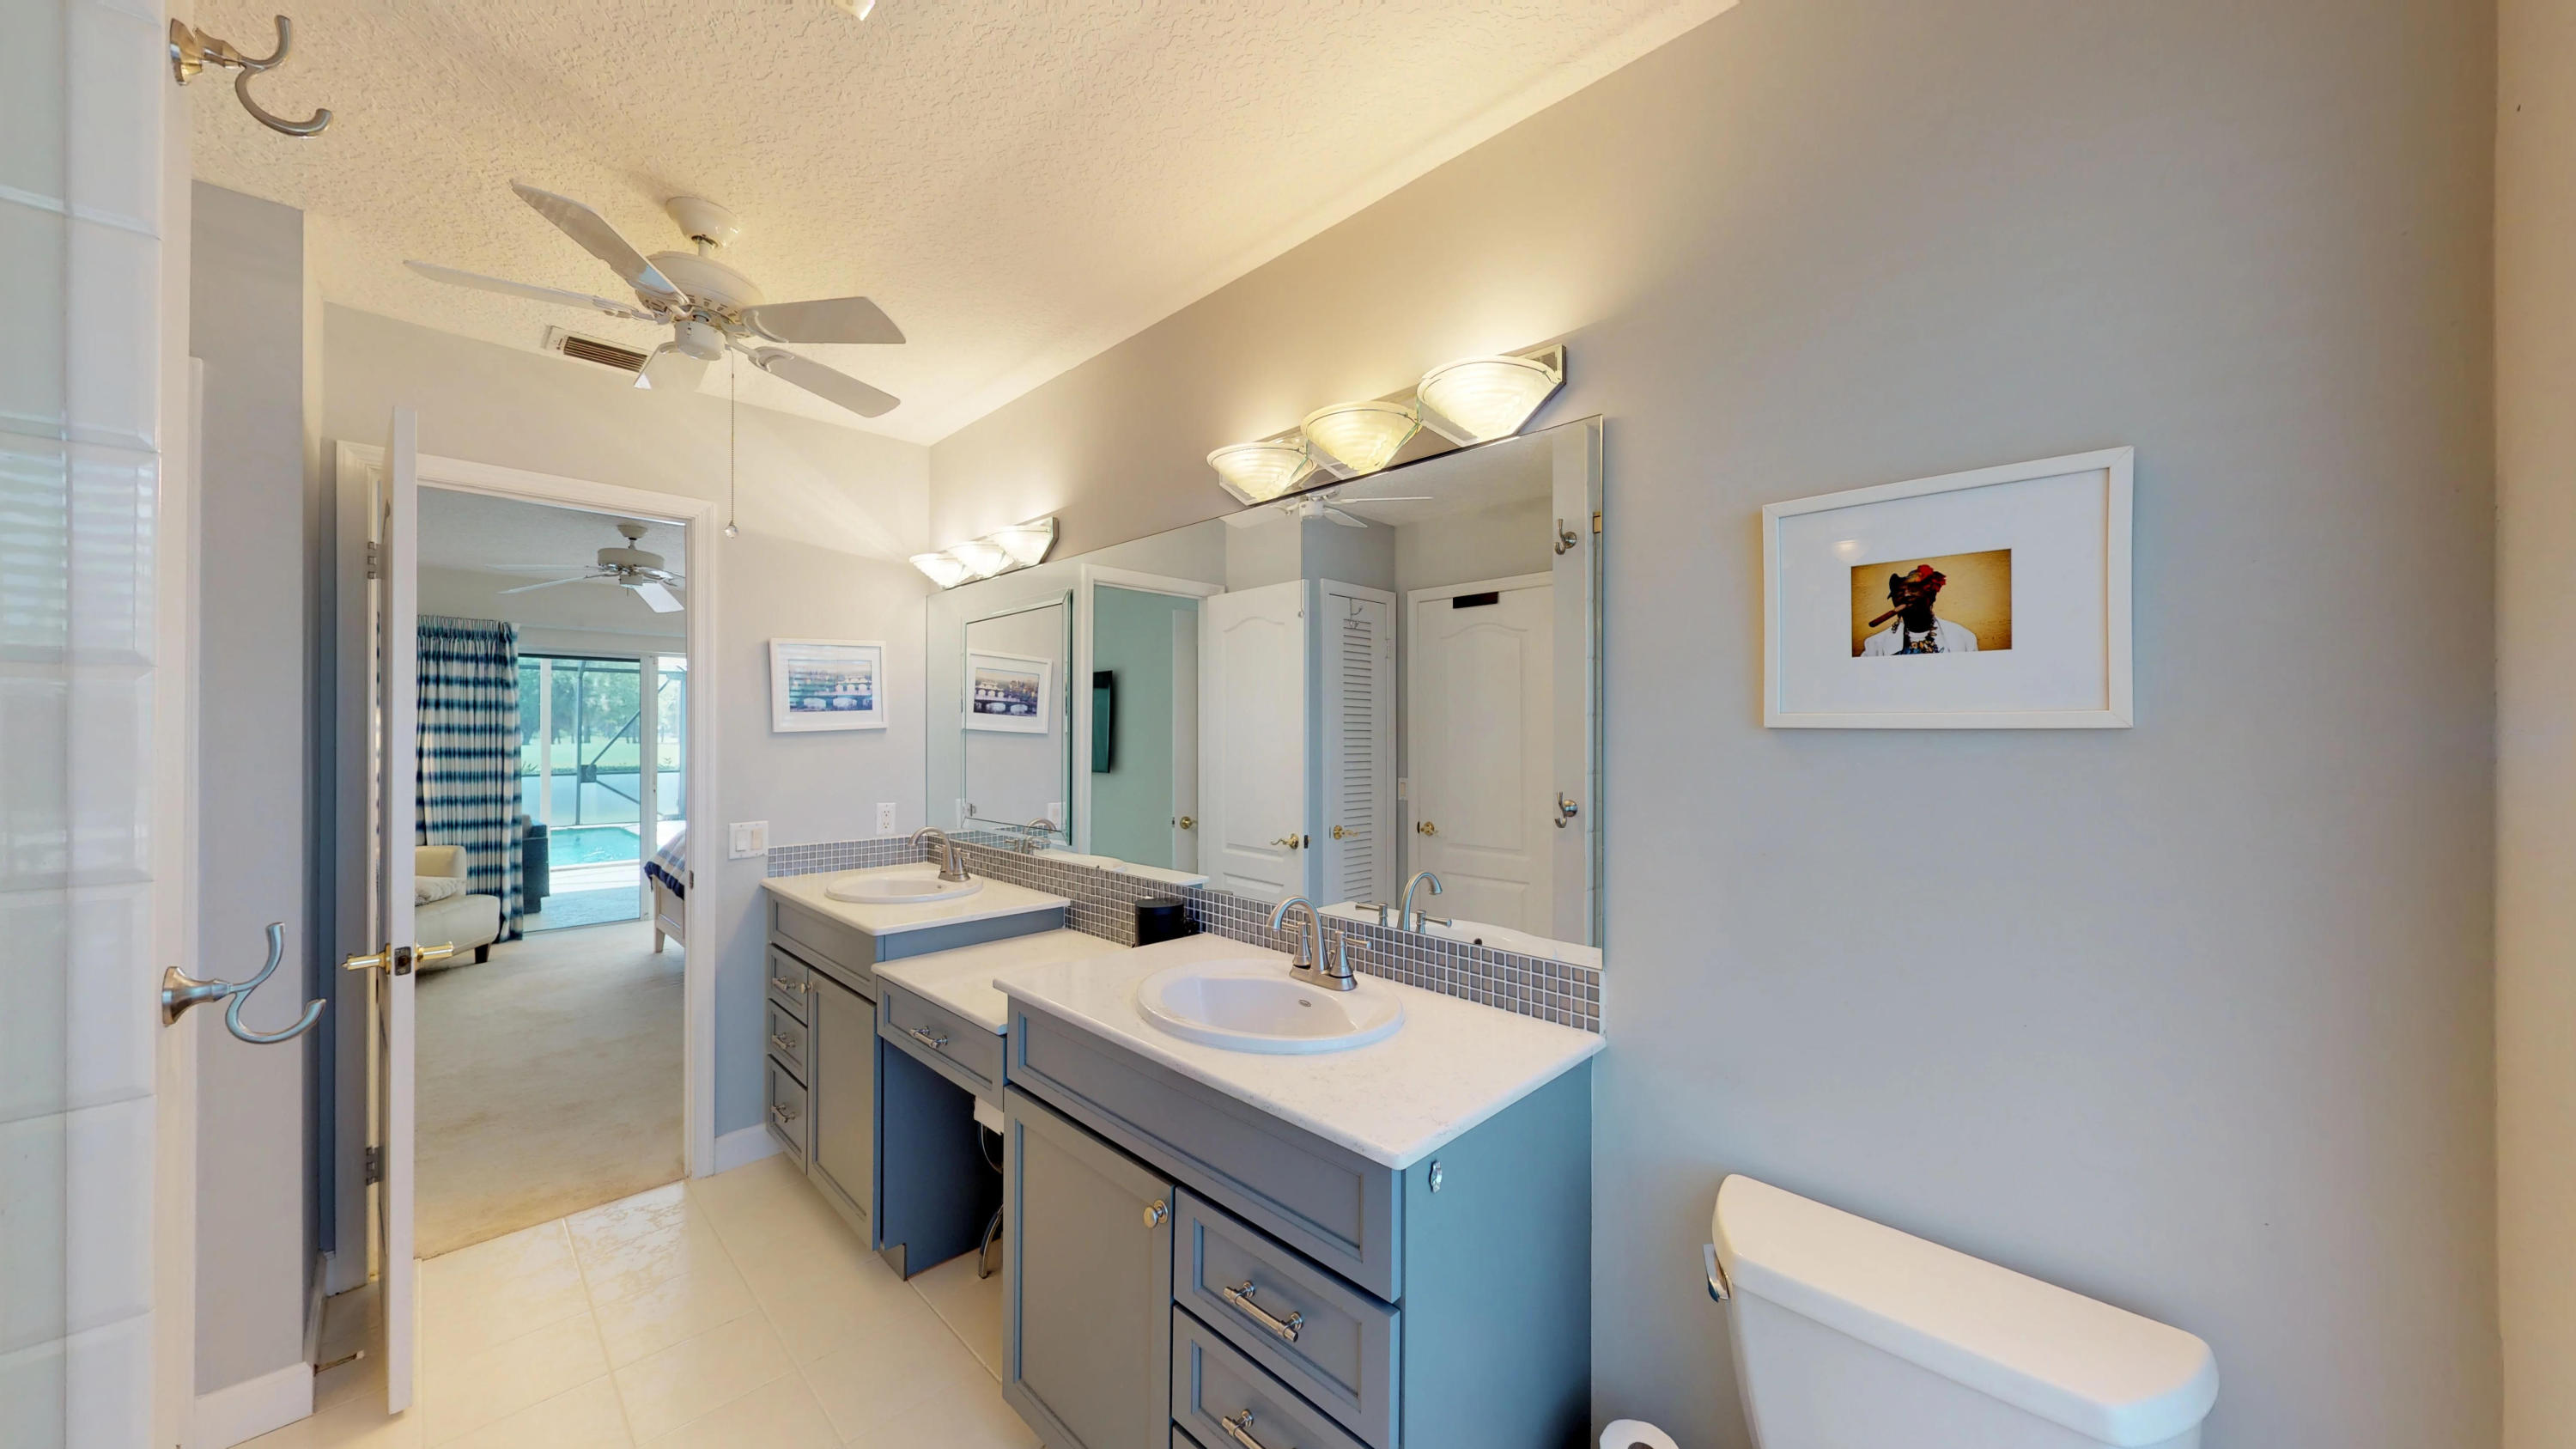 TEQUESTA HOMES